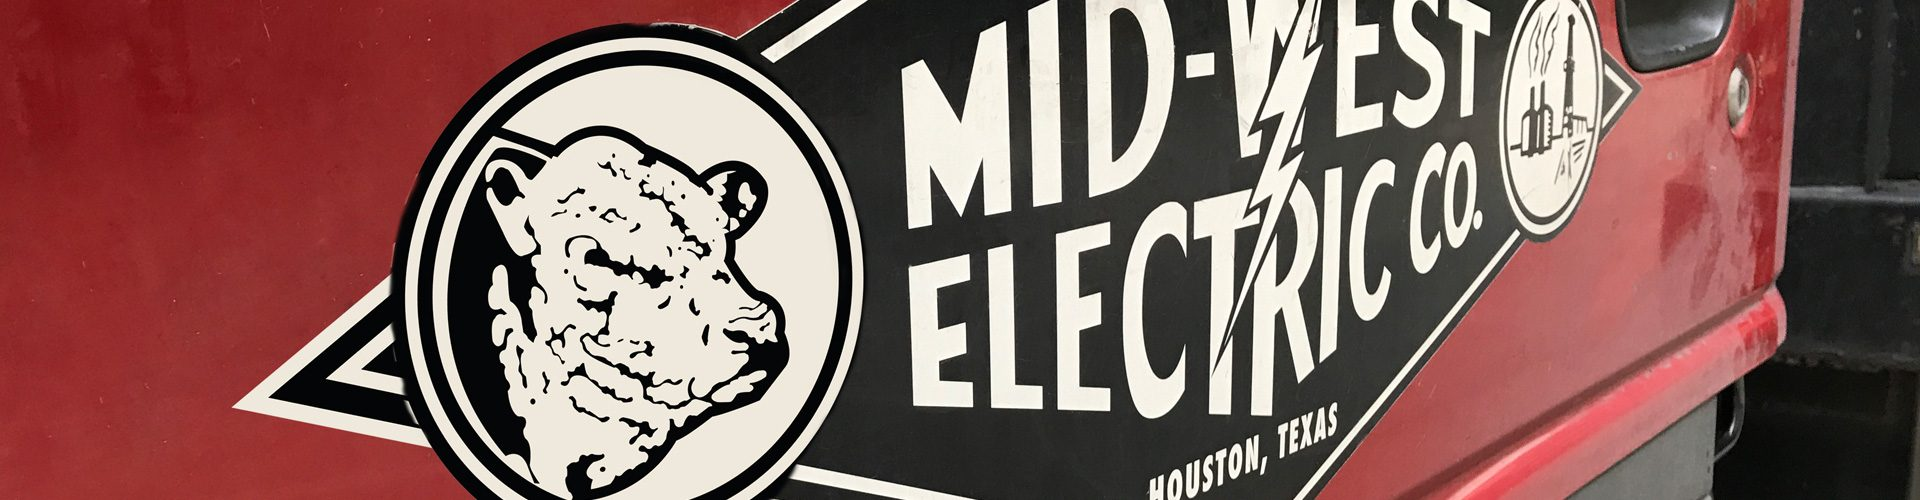 Mid-West Electric Co